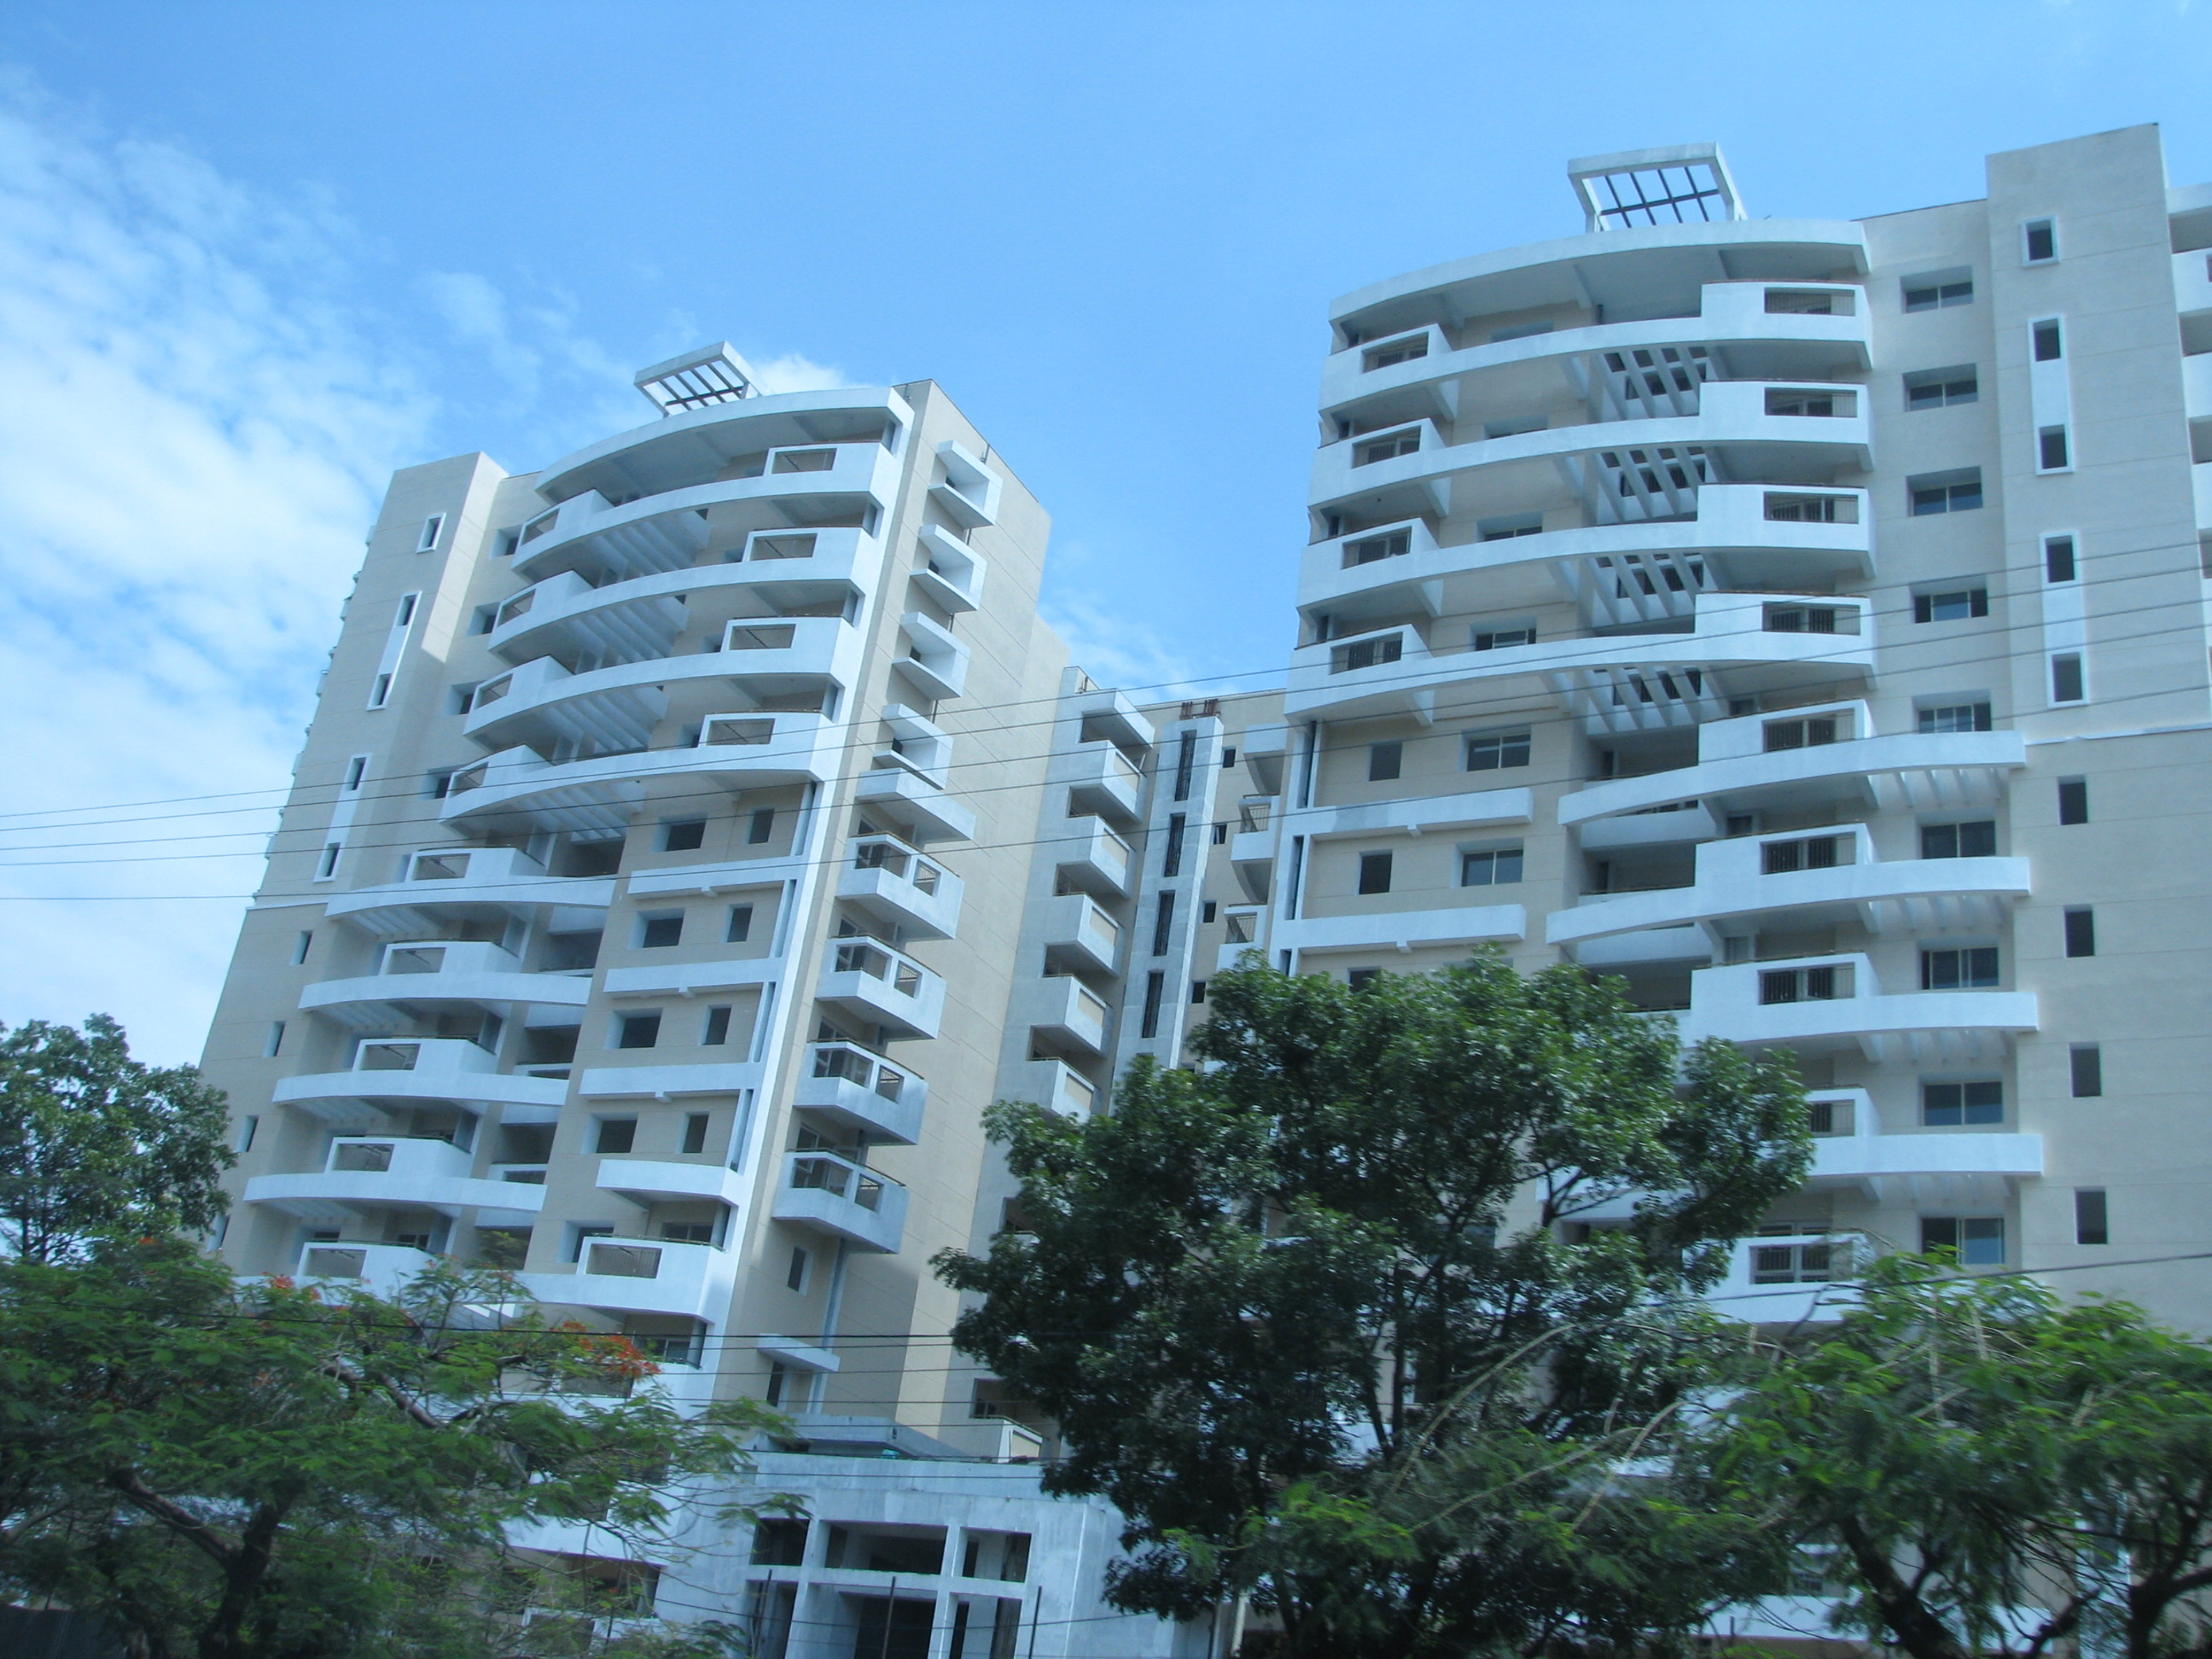 File:Residential Apartments On Bannerugatta Road 4 24 2011 2 18